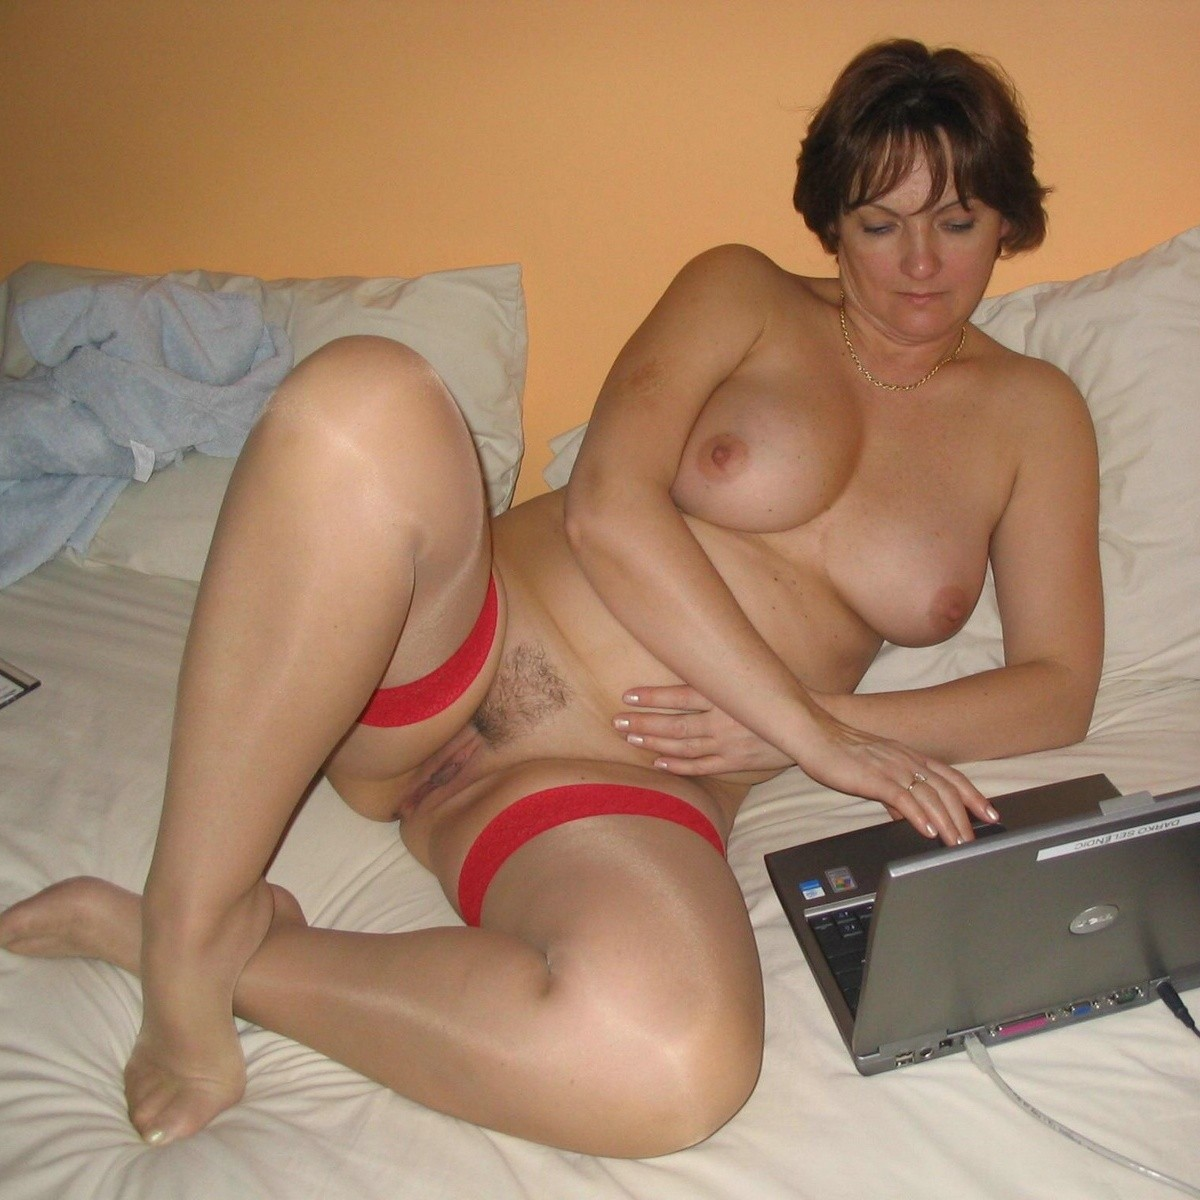 Star trek fake nude photos